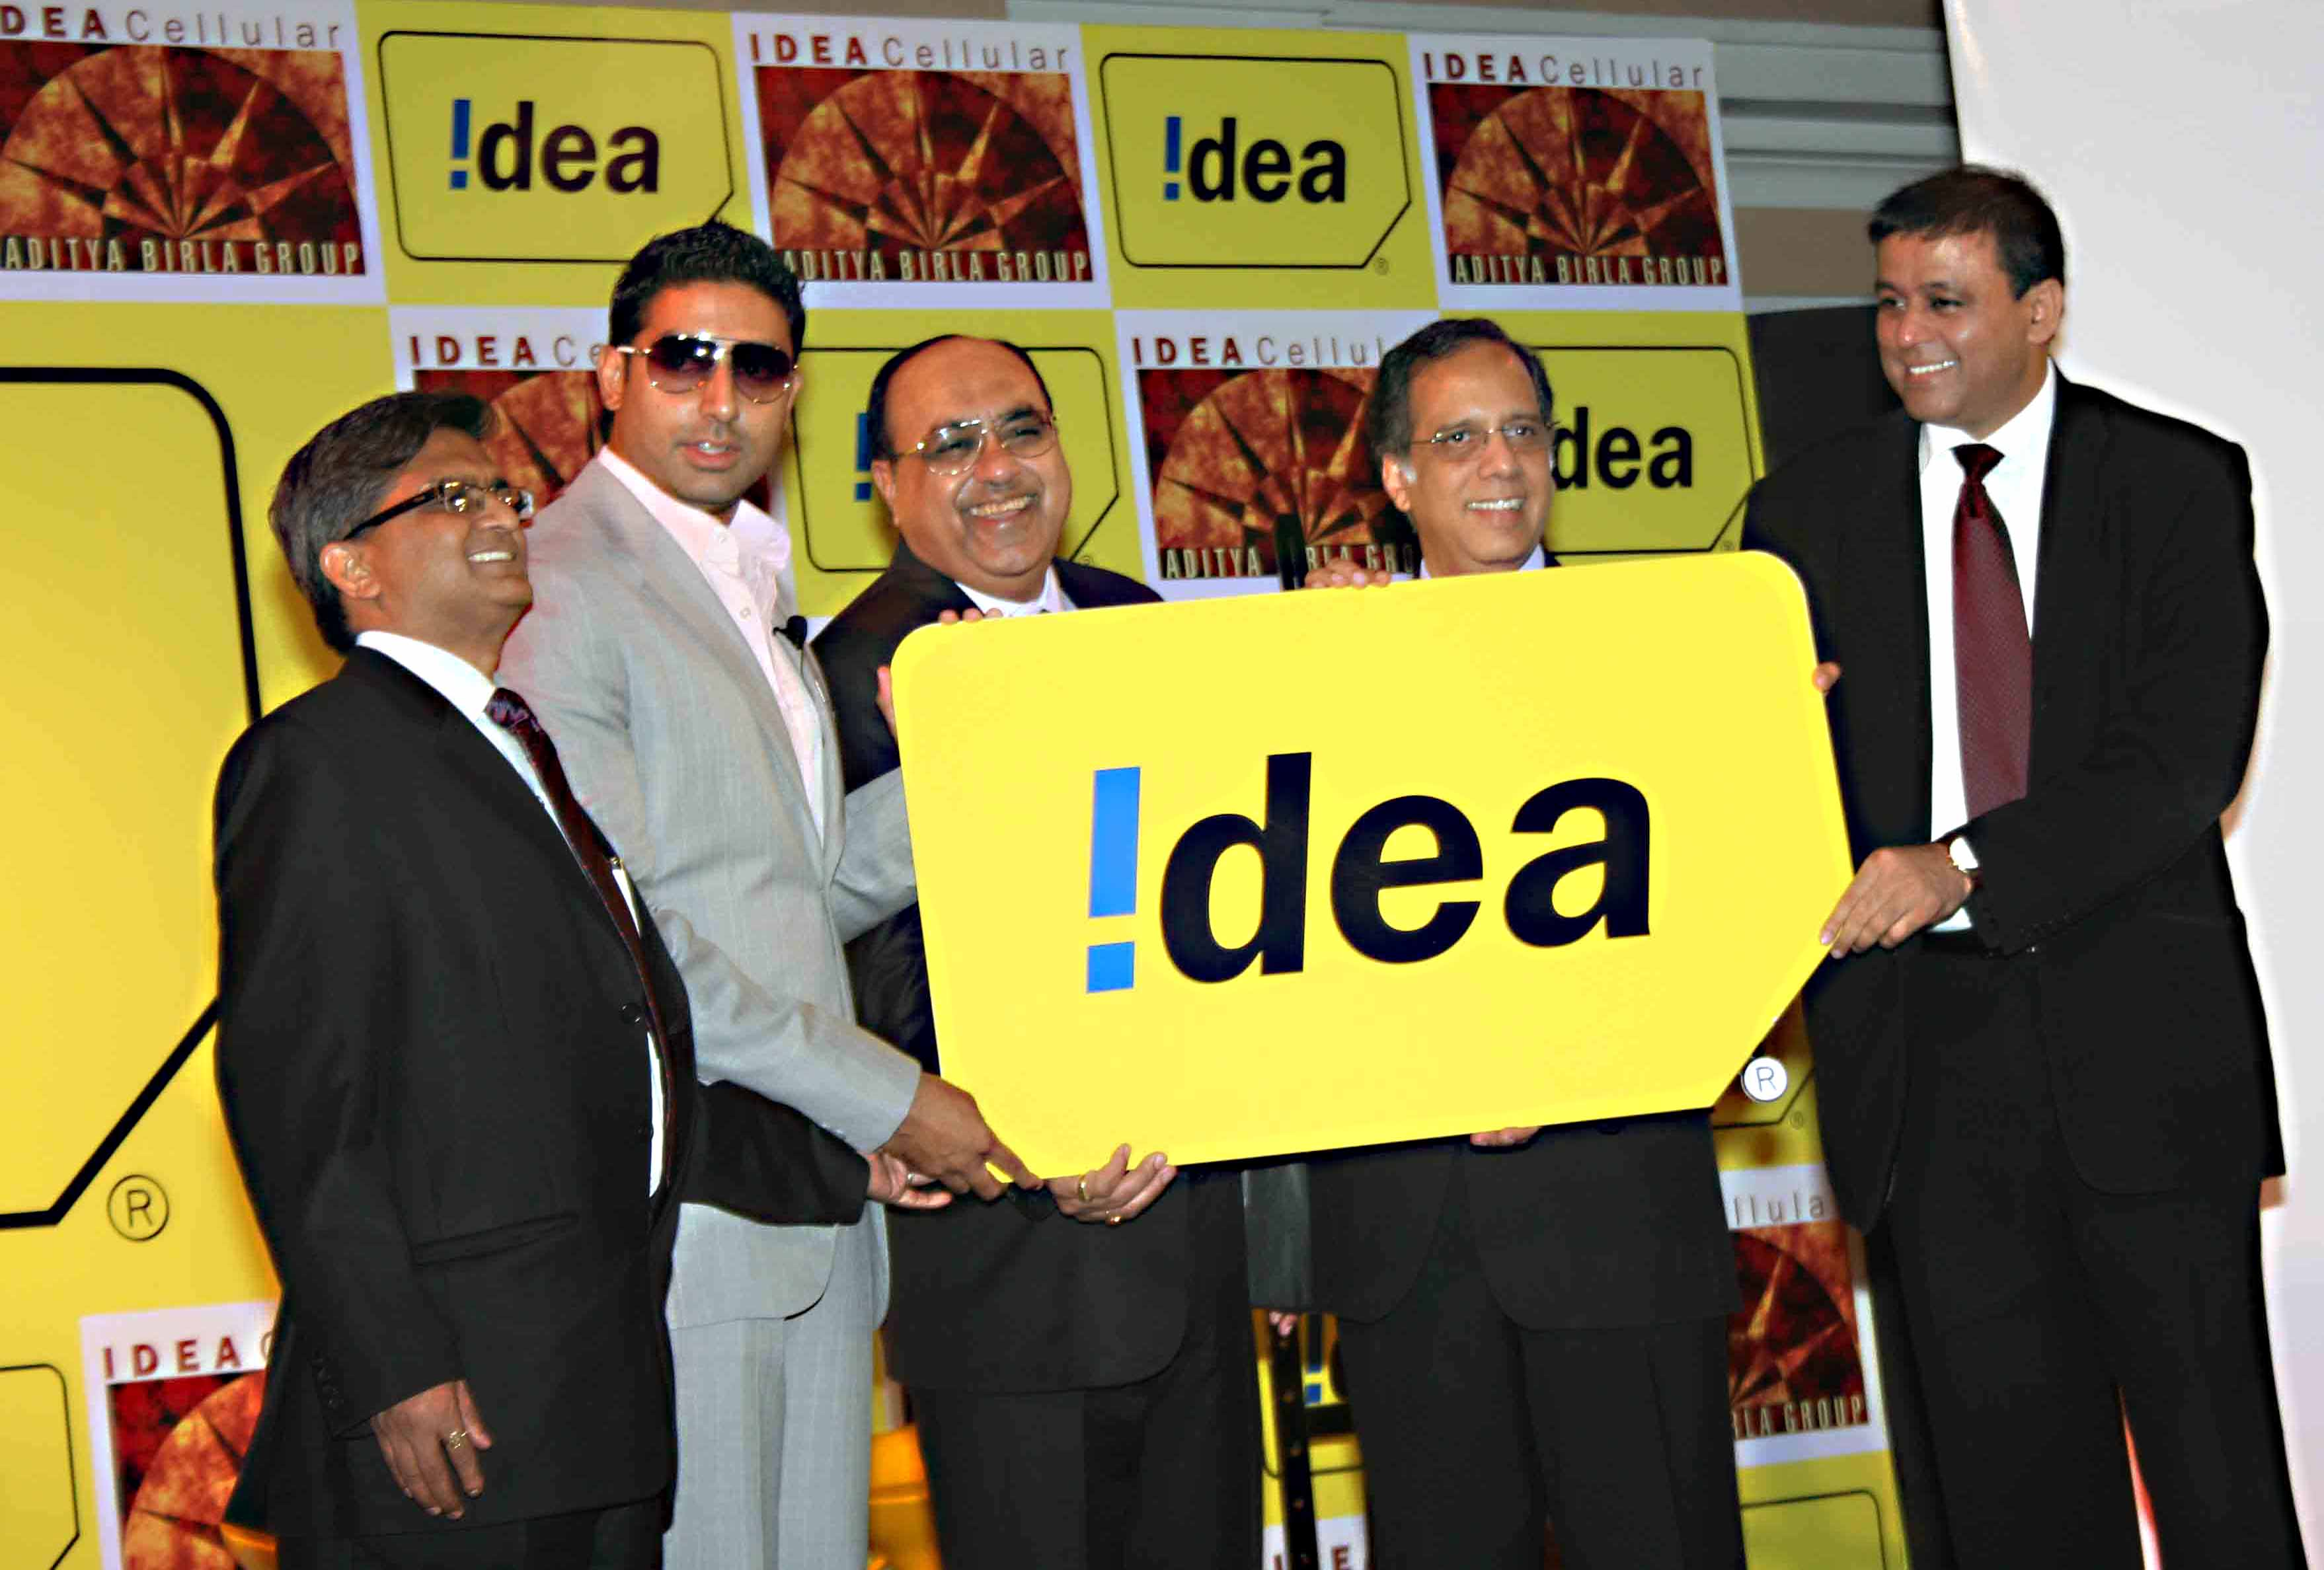 IDEA Cellular launches GSM Mobile Service in West Bengal and Kolkata